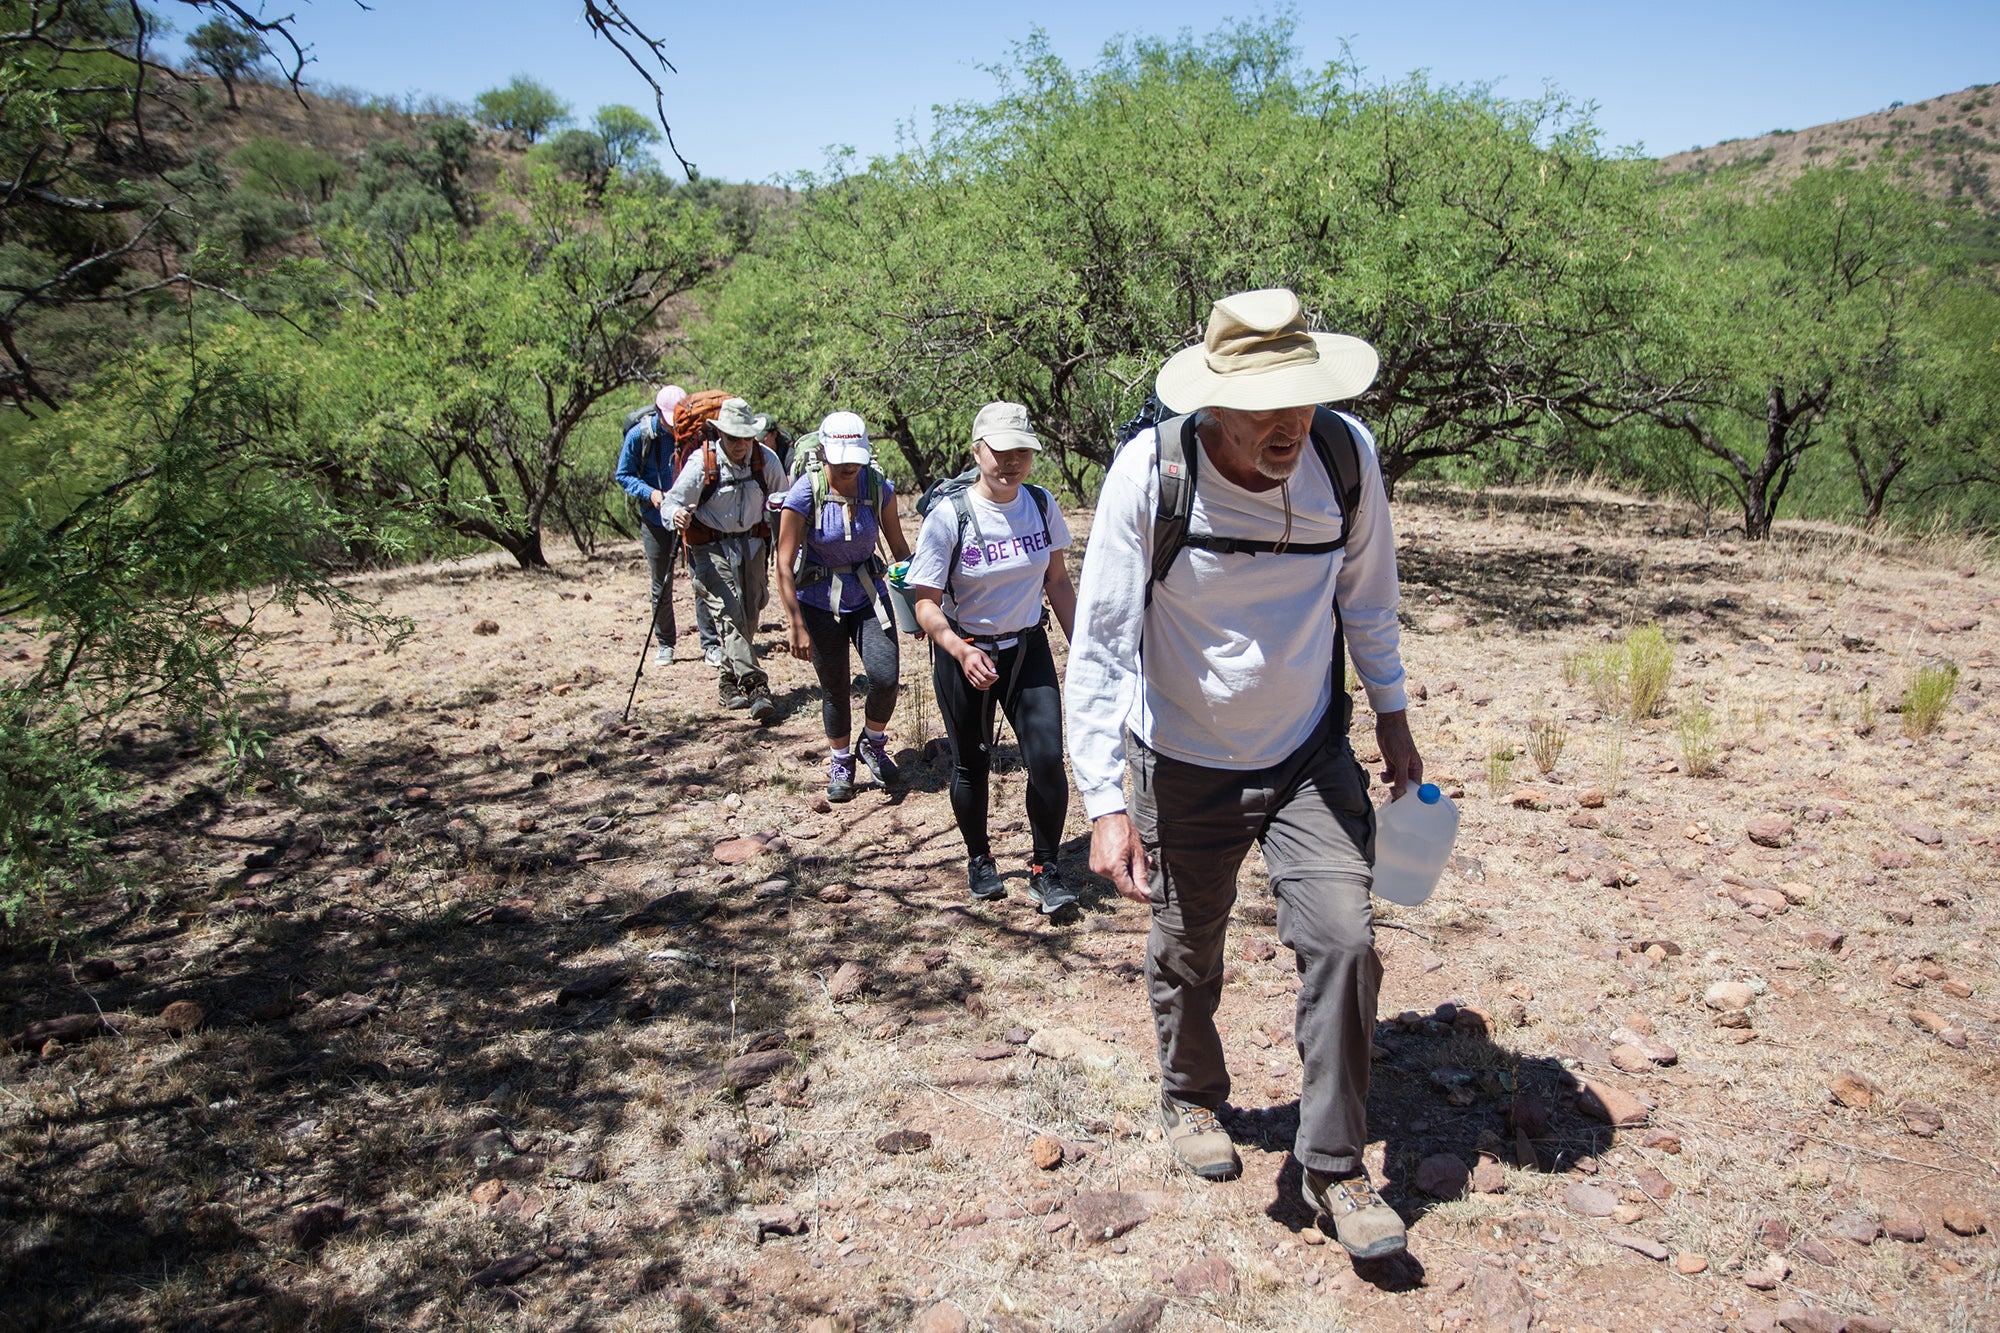 A group hiking in the desert